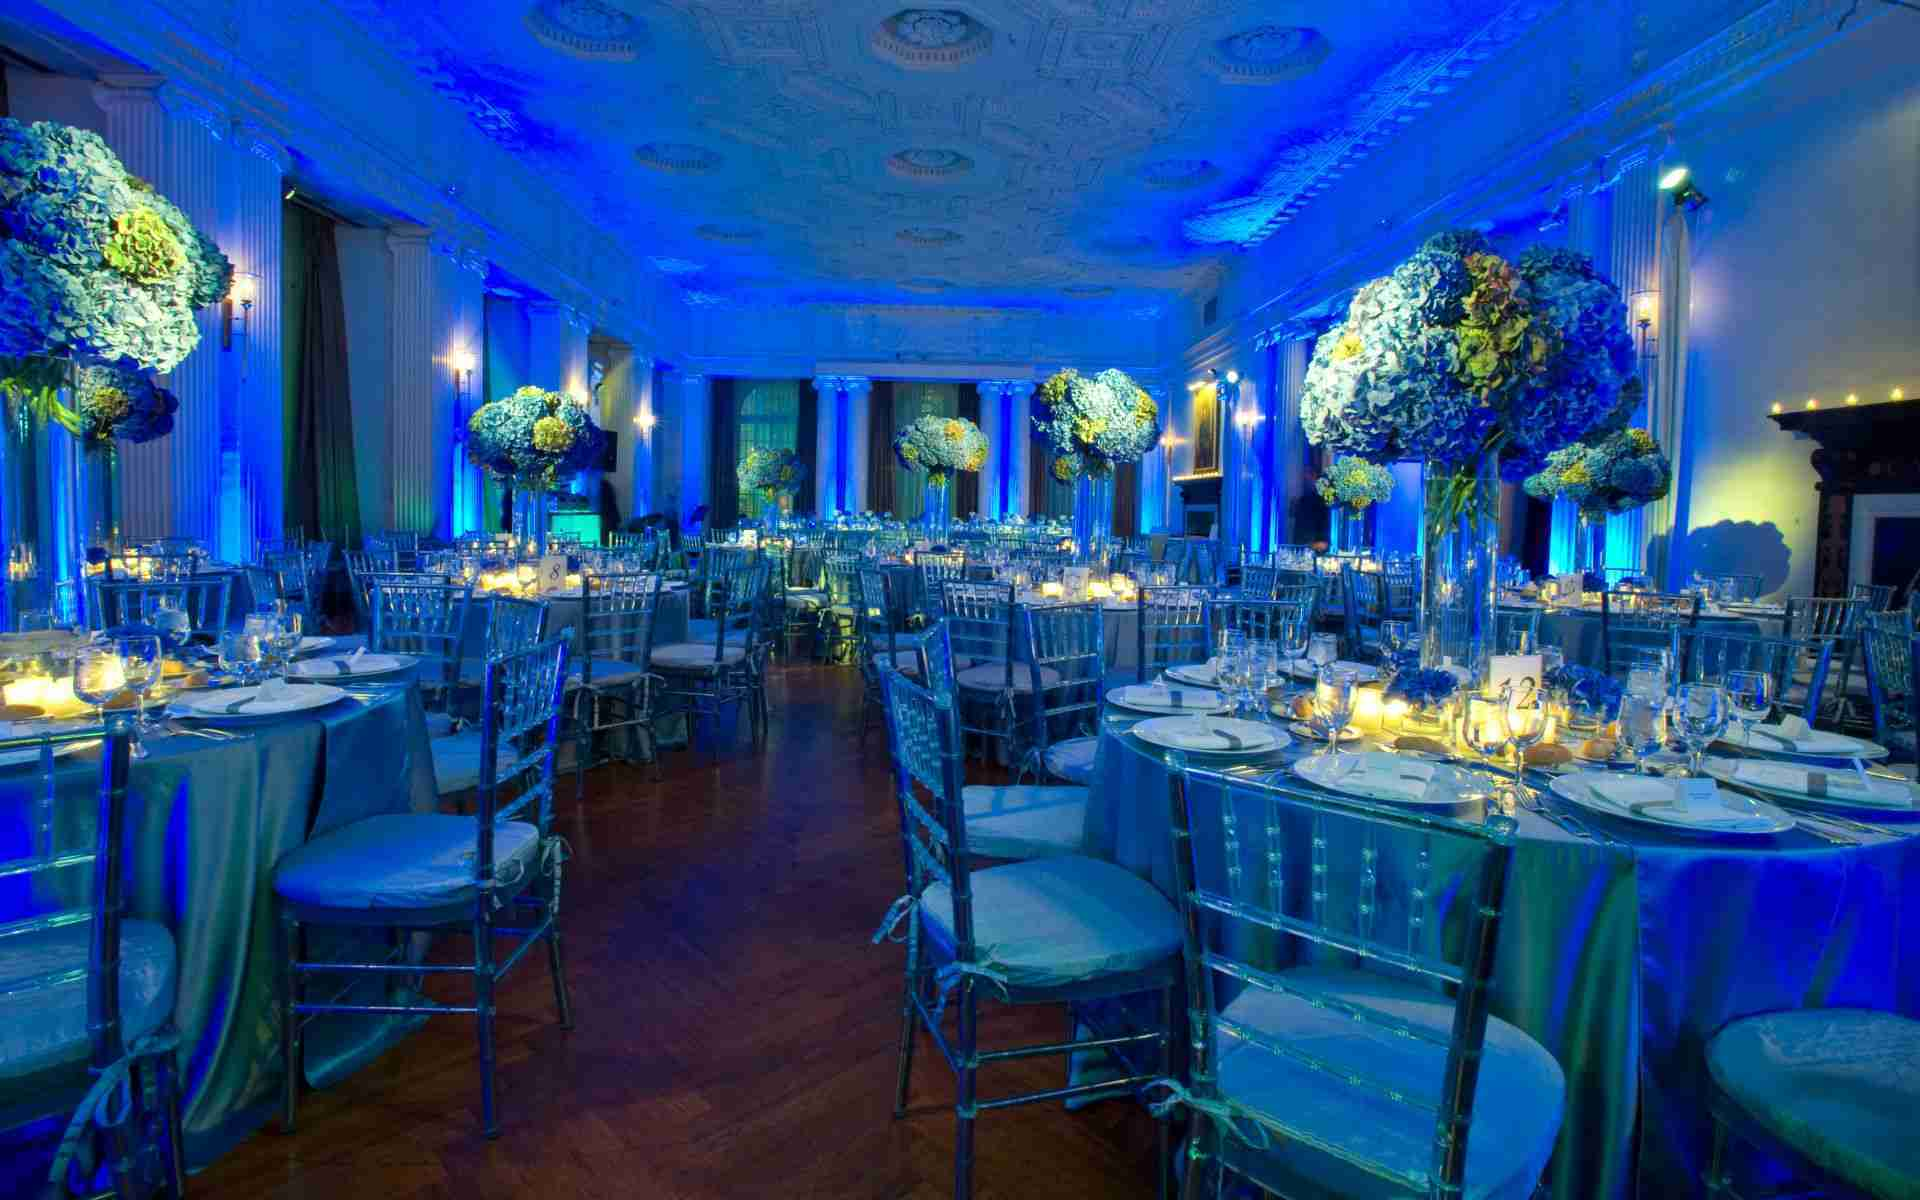 Savannah GA Destination Wedding-Uplight Example_Monogram Example_Royal Blue